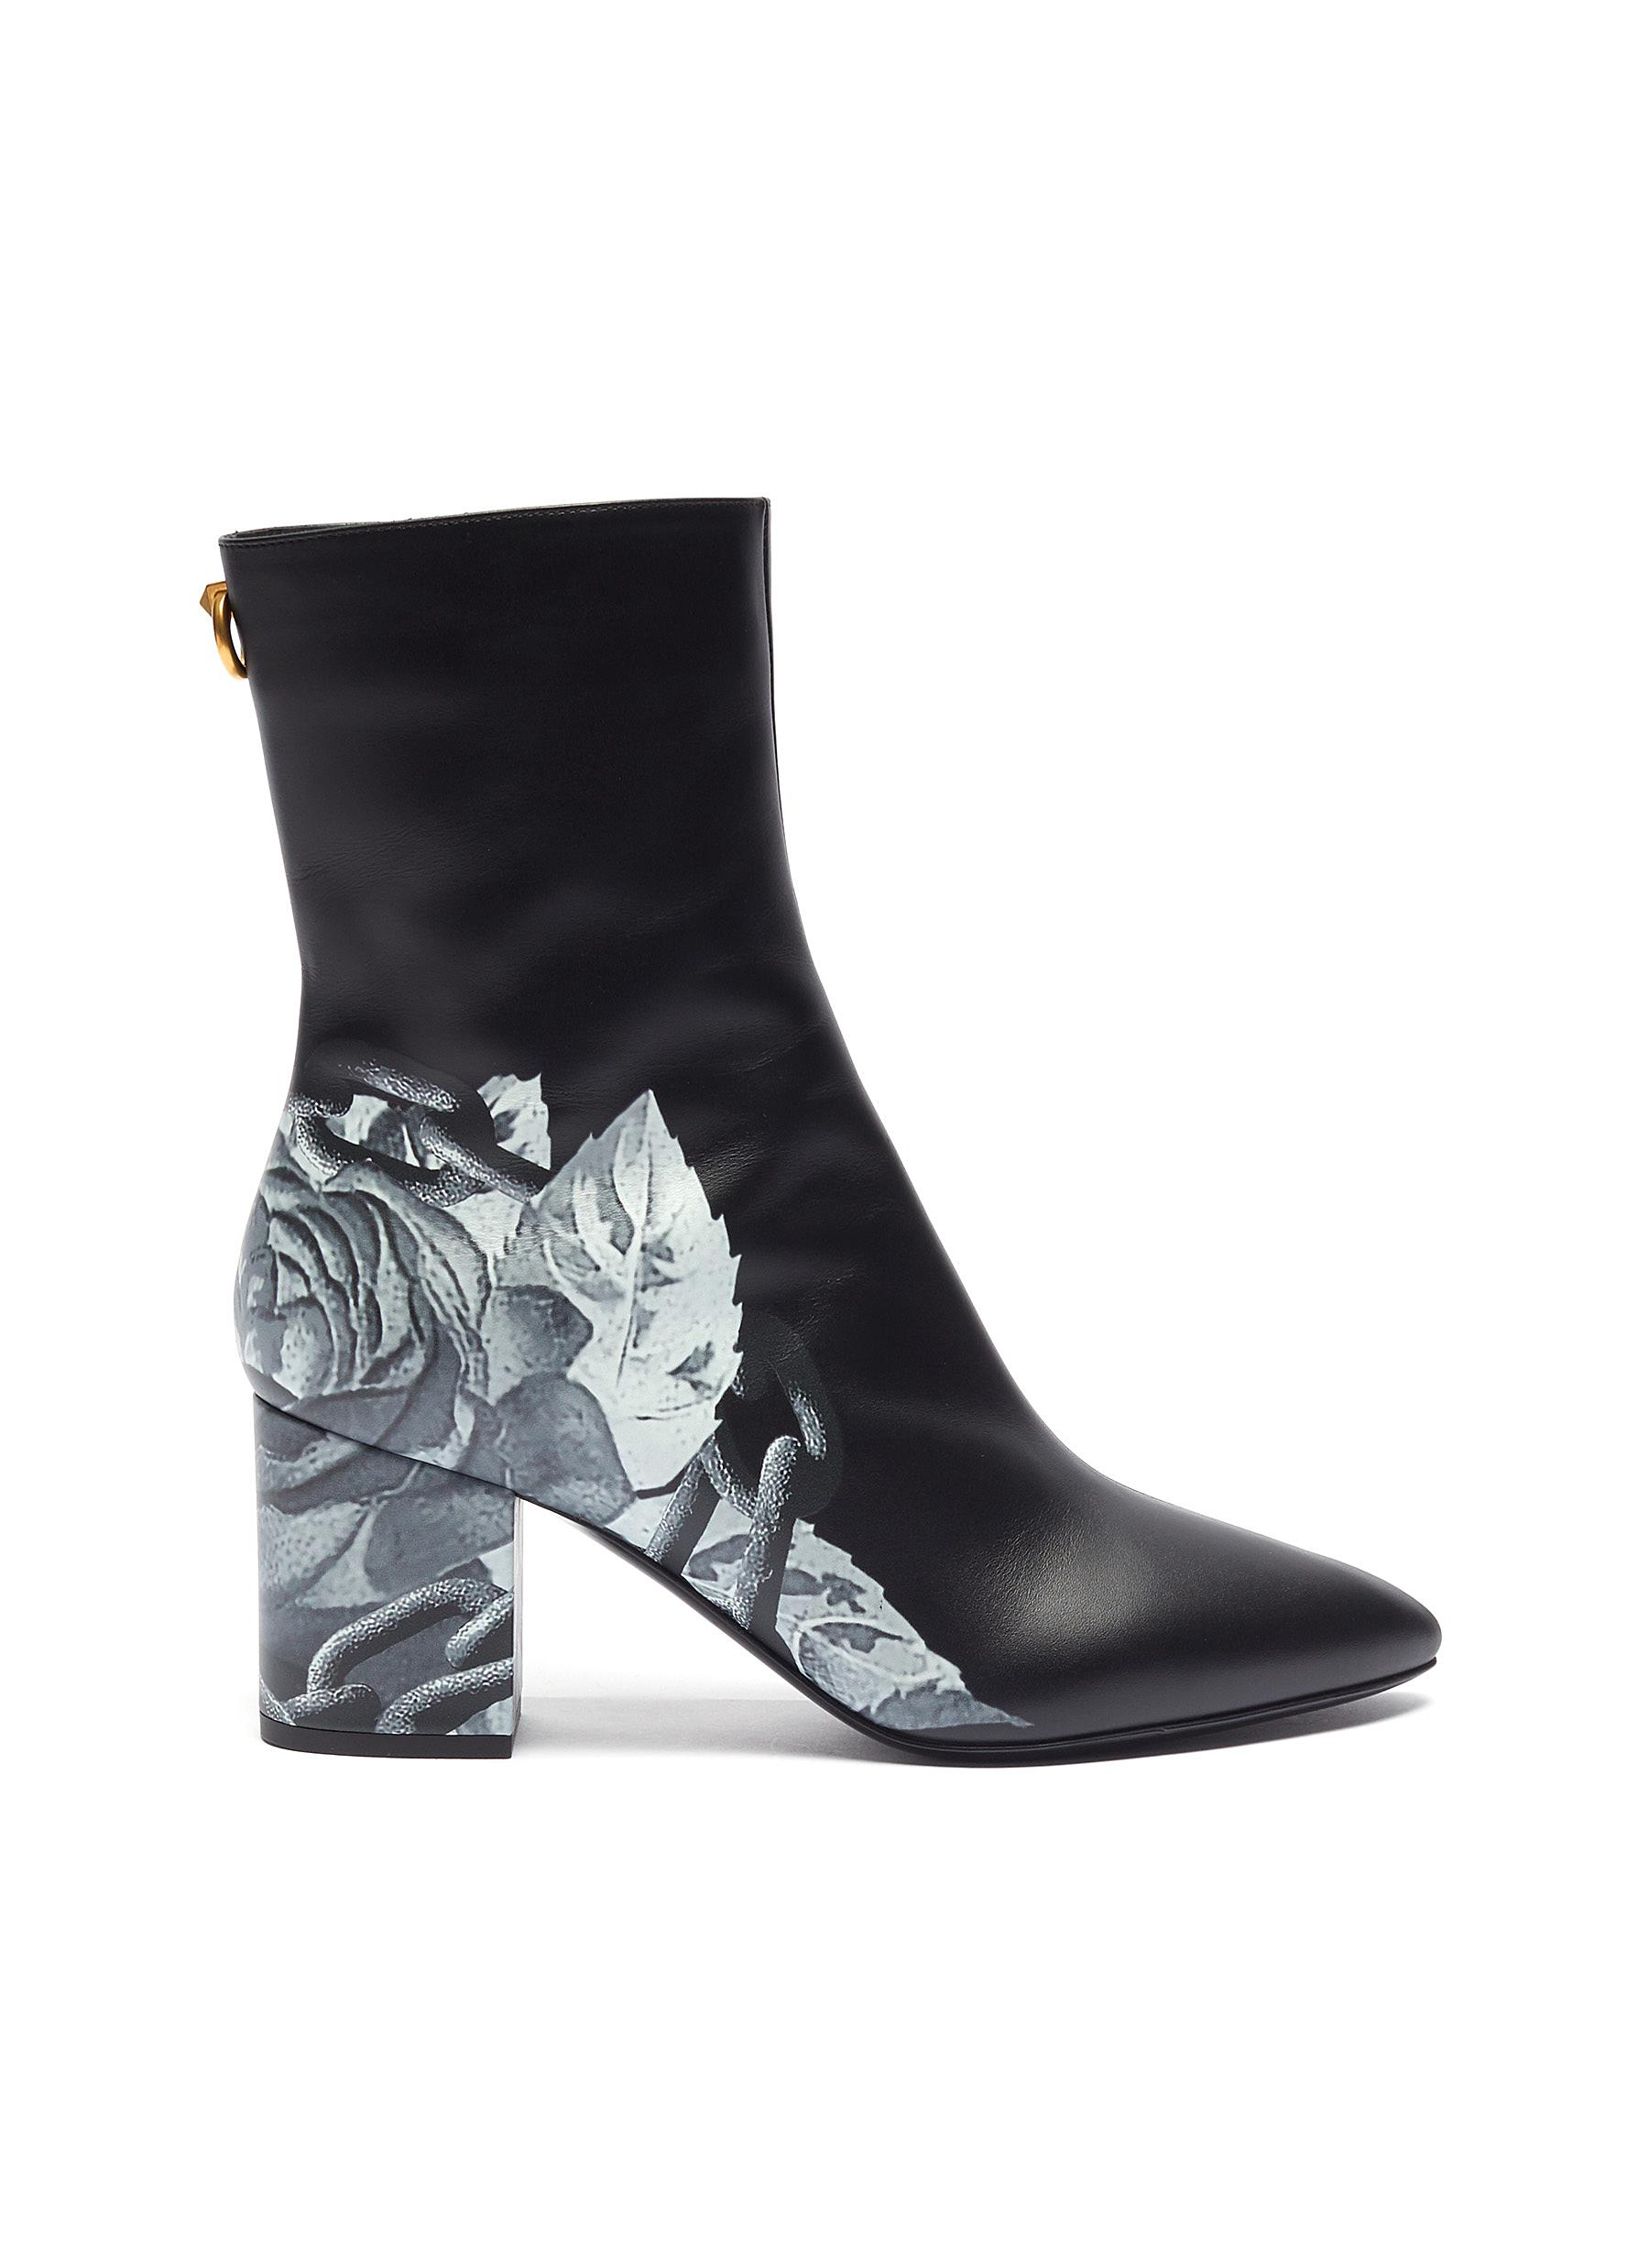 x UNDERCOVER rose print leather ankle boots by Valentino